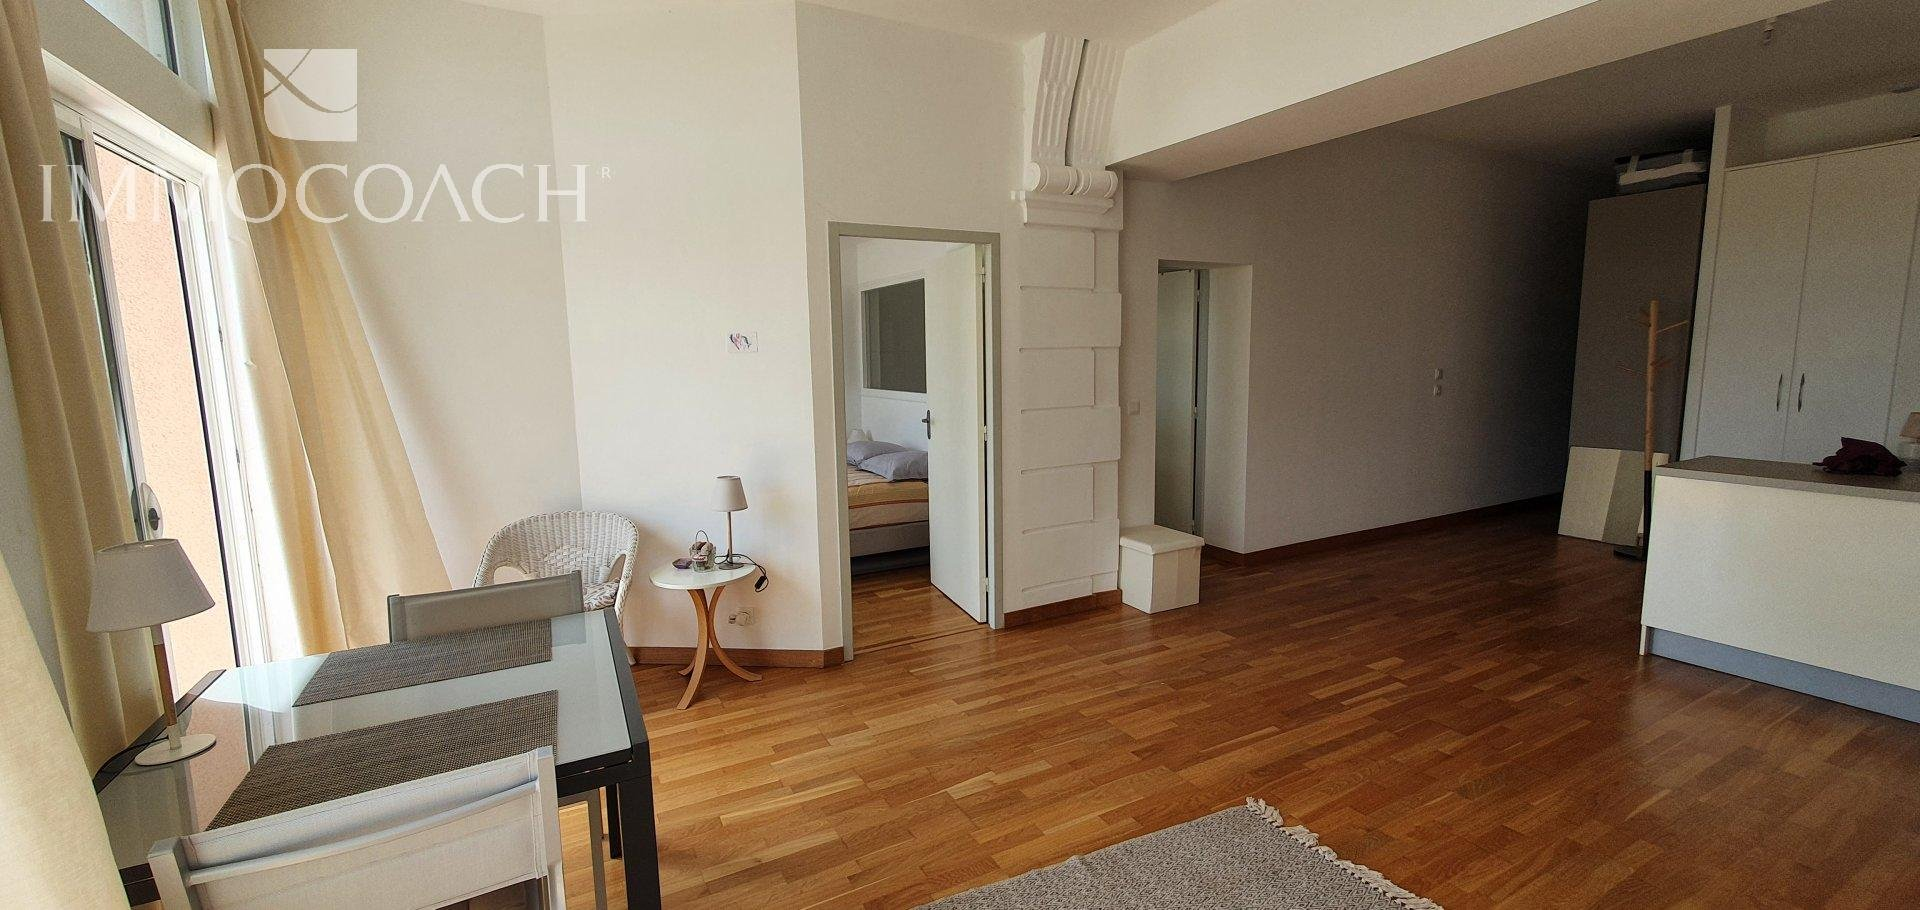 Apartment with sea view directly at the beach in Le Dramont (Agay / Saint-Raphaël)